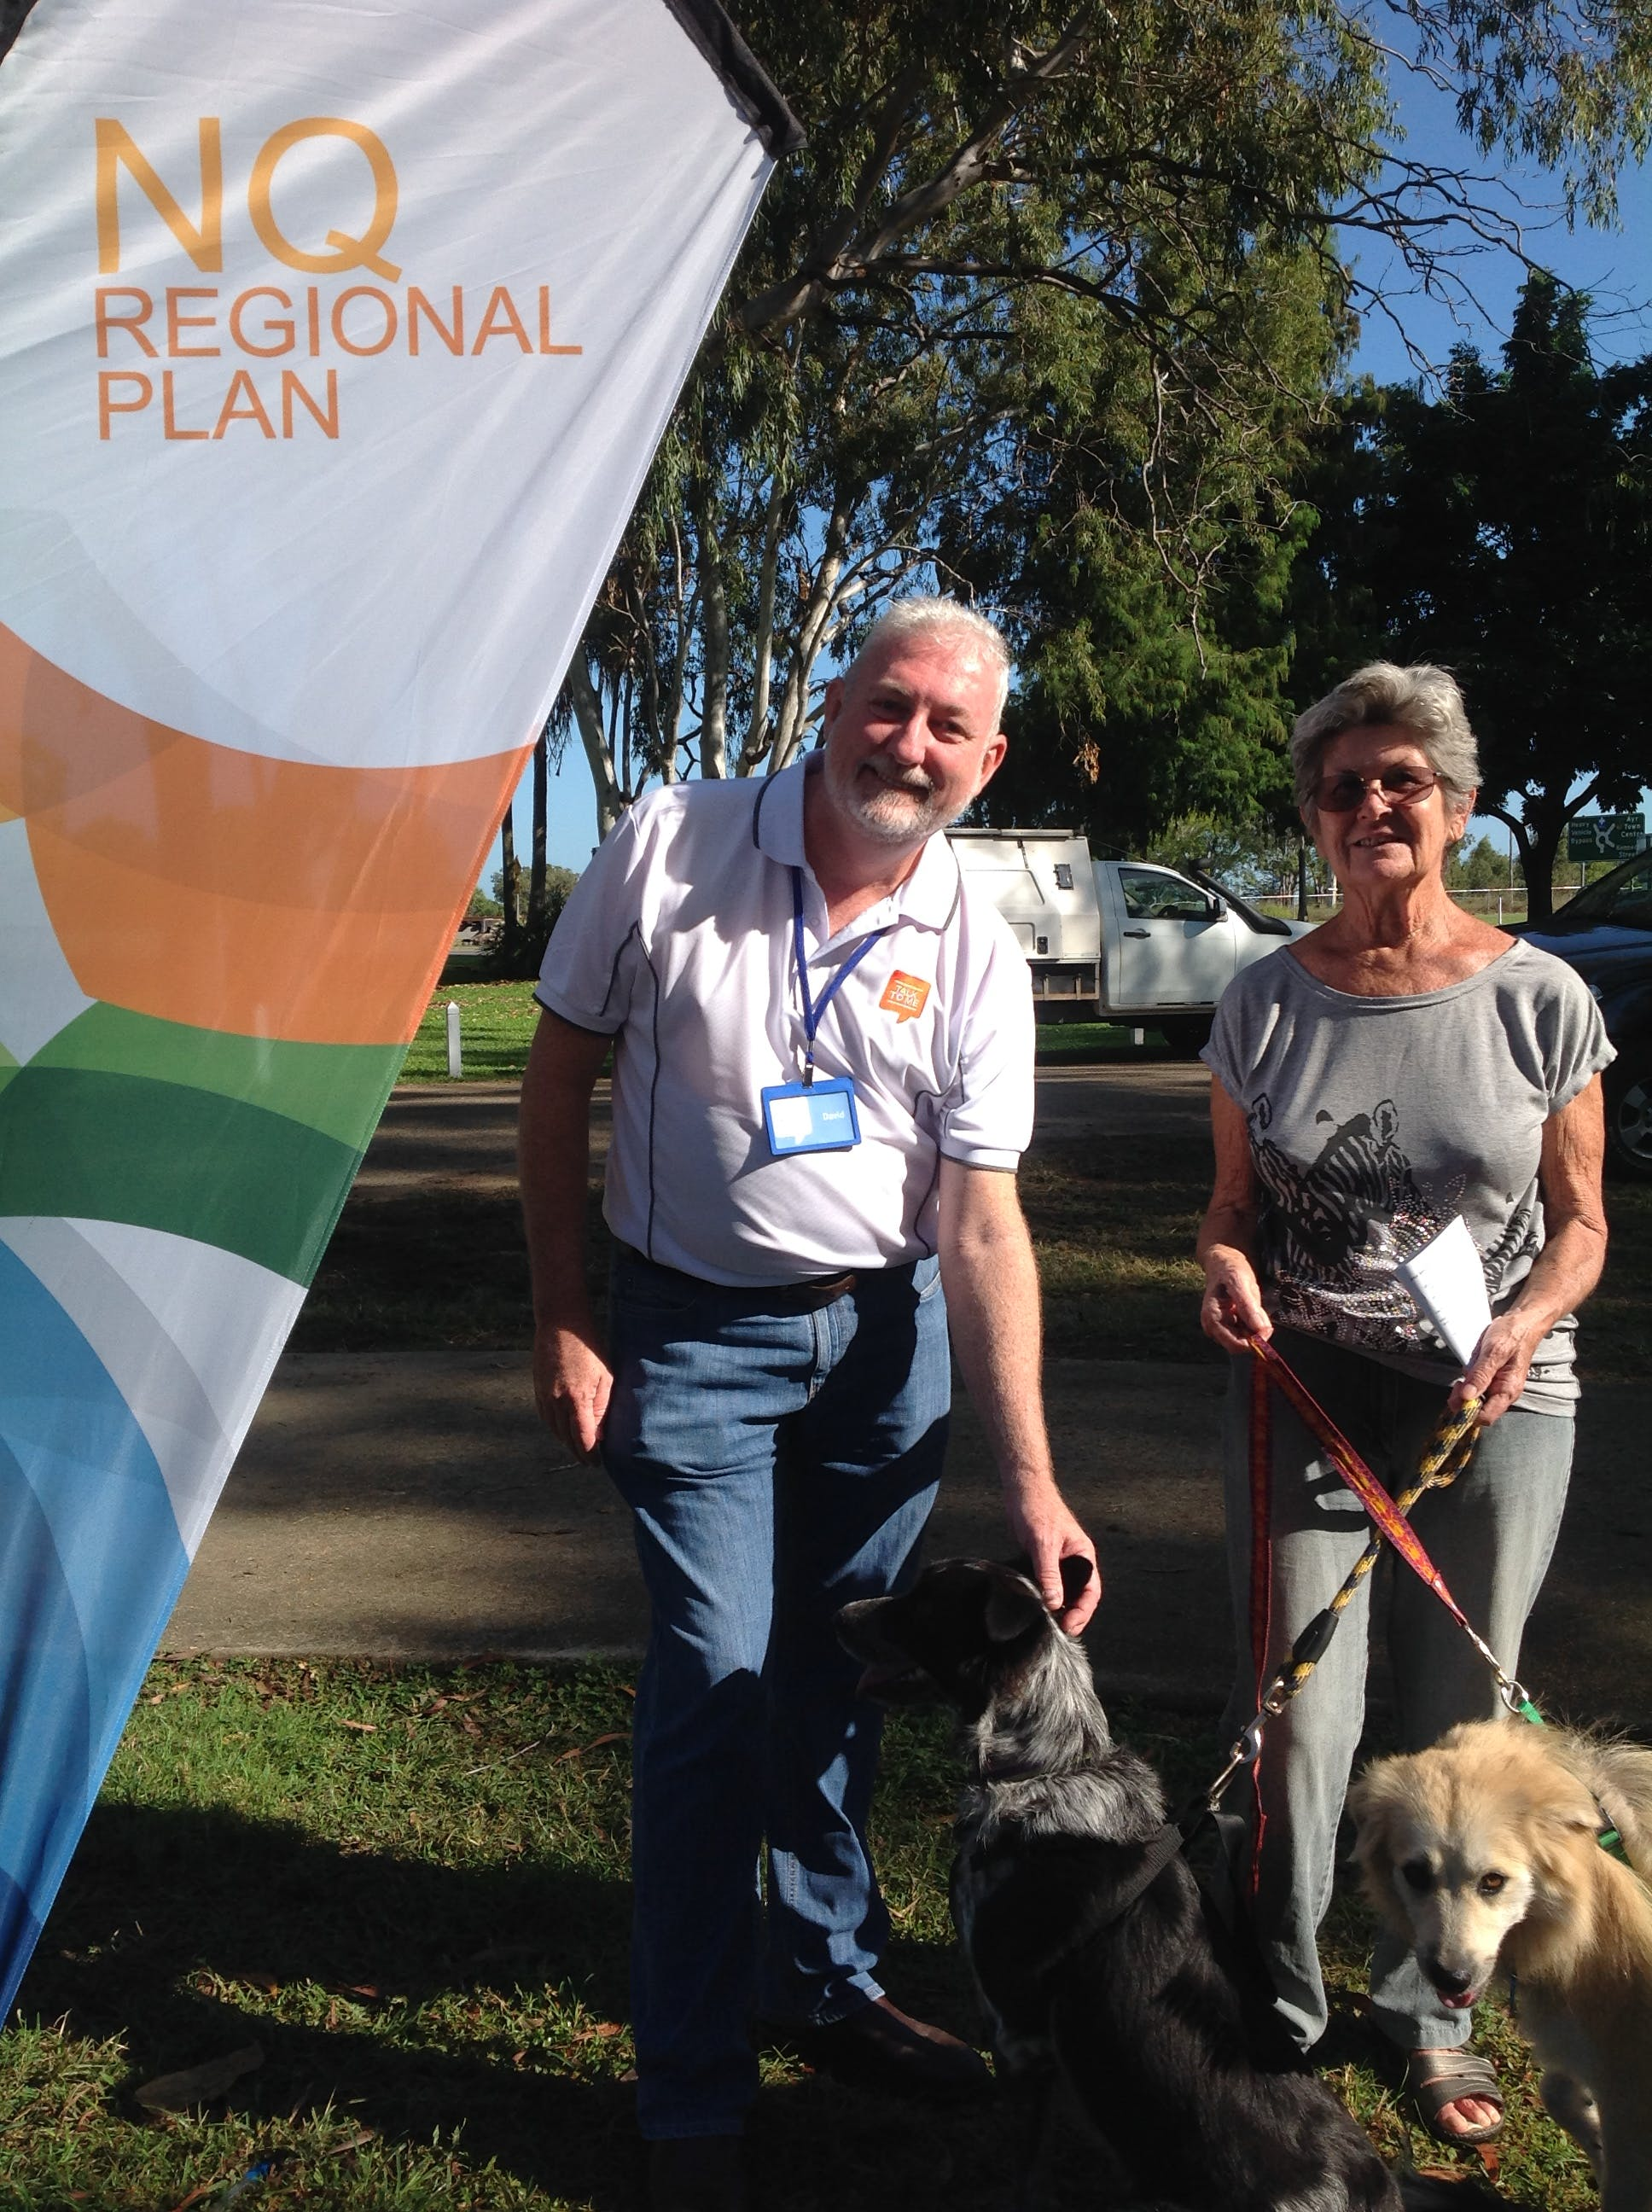 North Queensland Regional Plan engagement team member David with Del and her rescue dogs at the Plantation Park markets on Sunday 21 May.